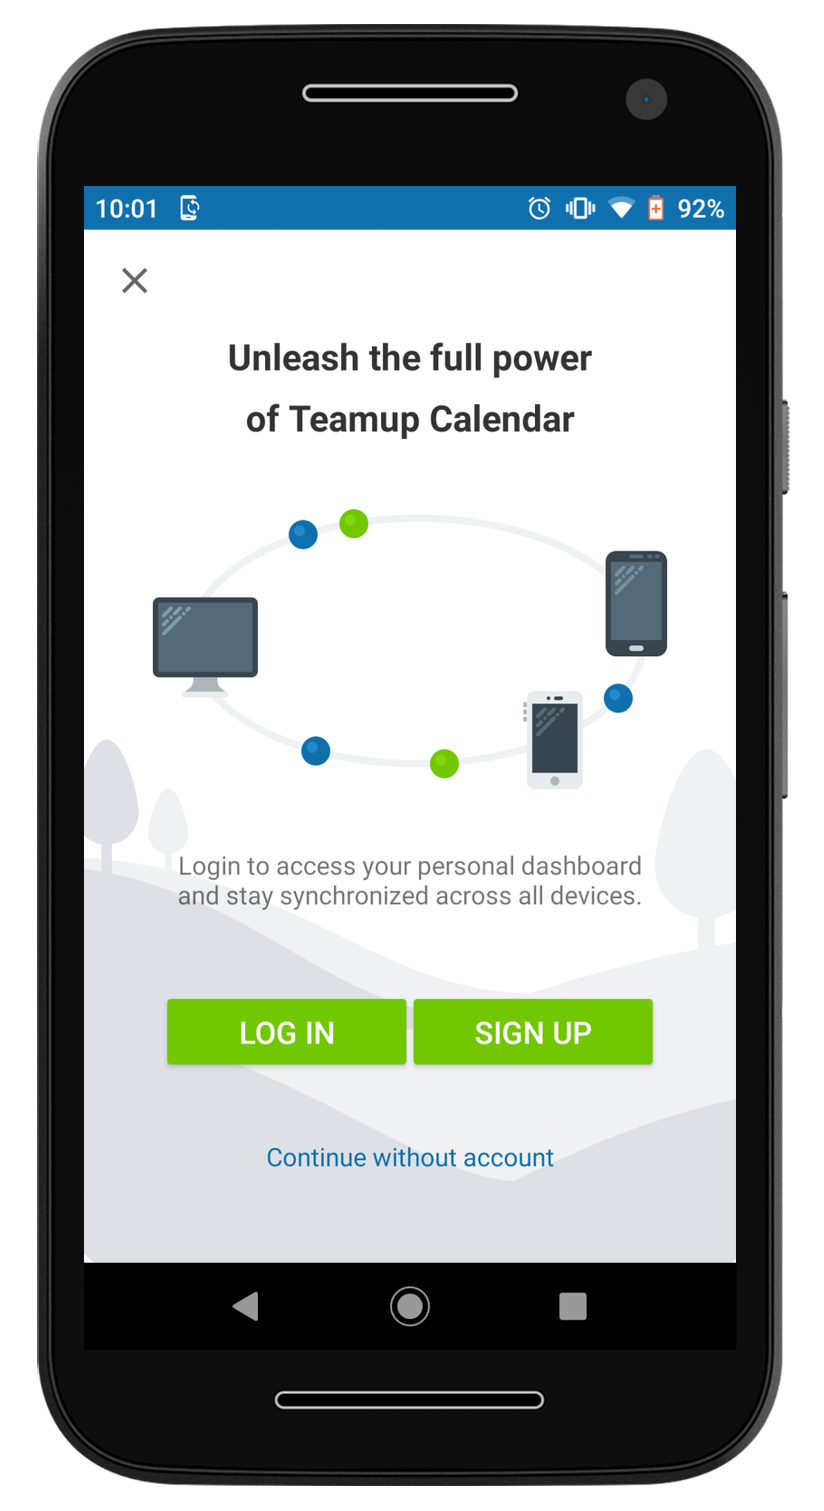 The welcome screen on the Teamup mobile app for Android